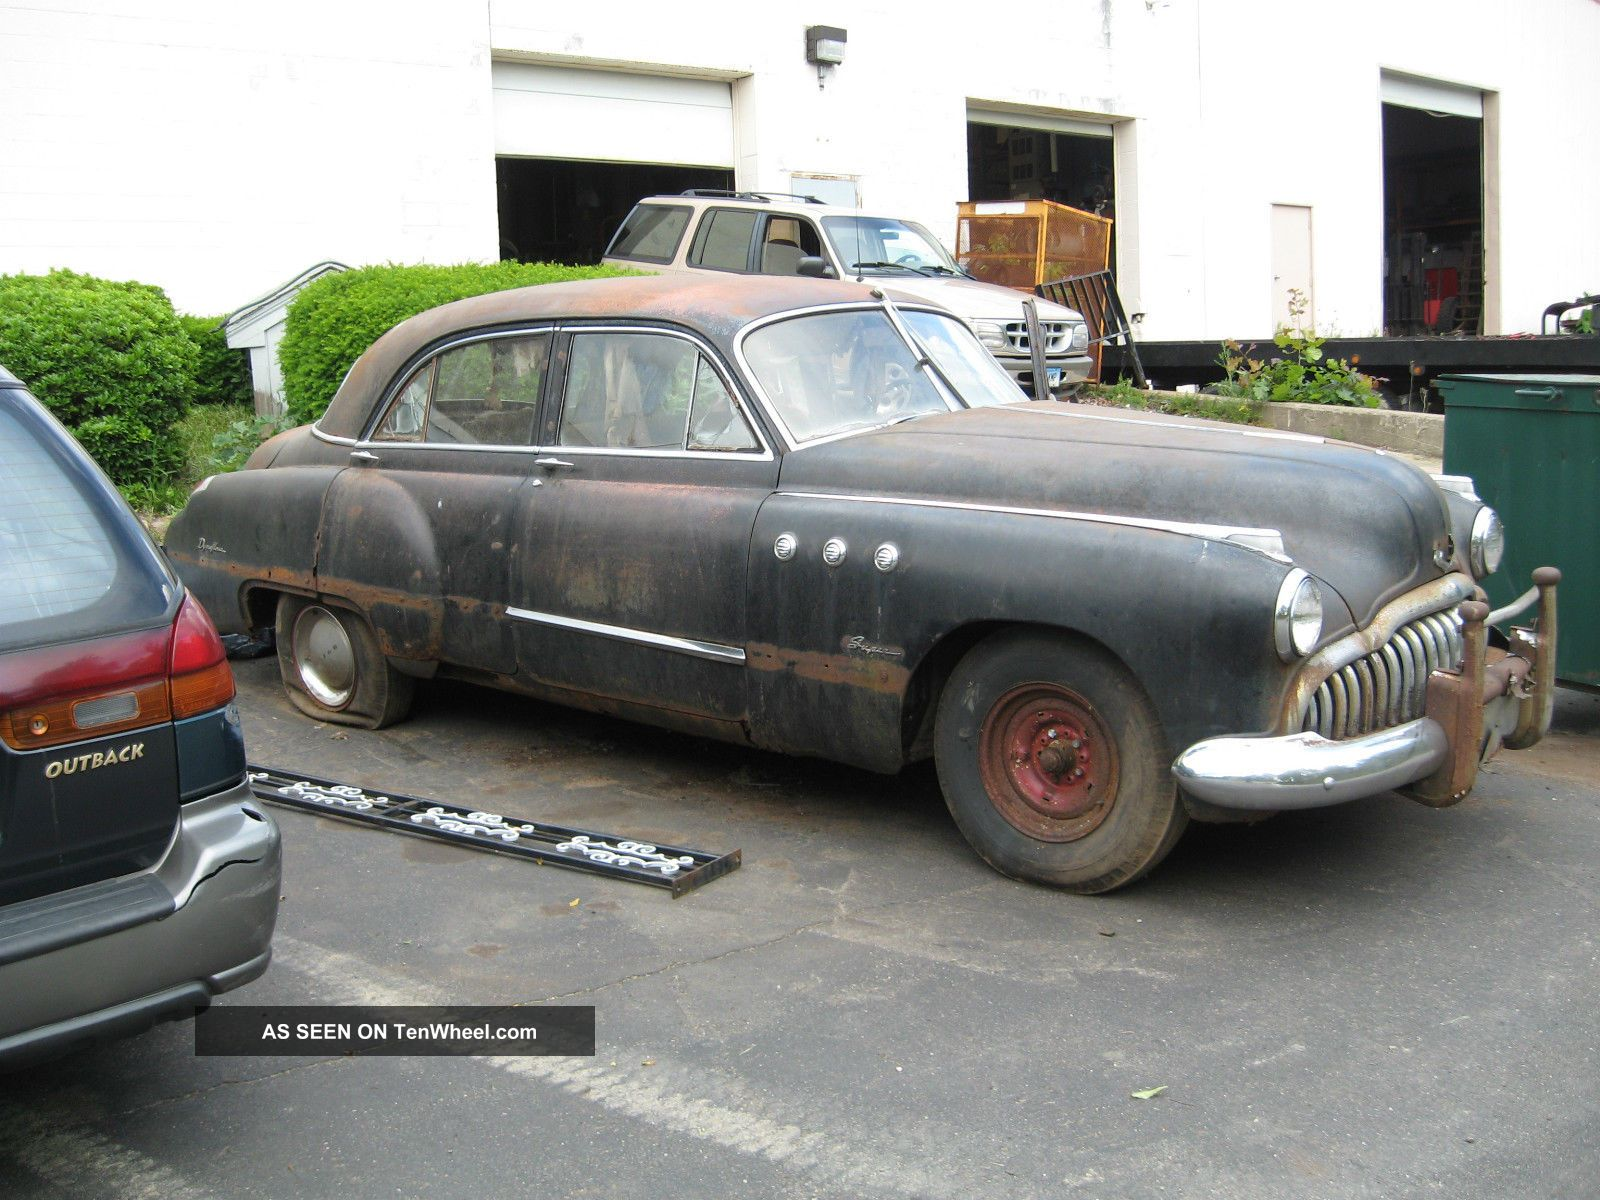 Us $1800.  00 1949 Buick 4 Door For Restoration Other photo